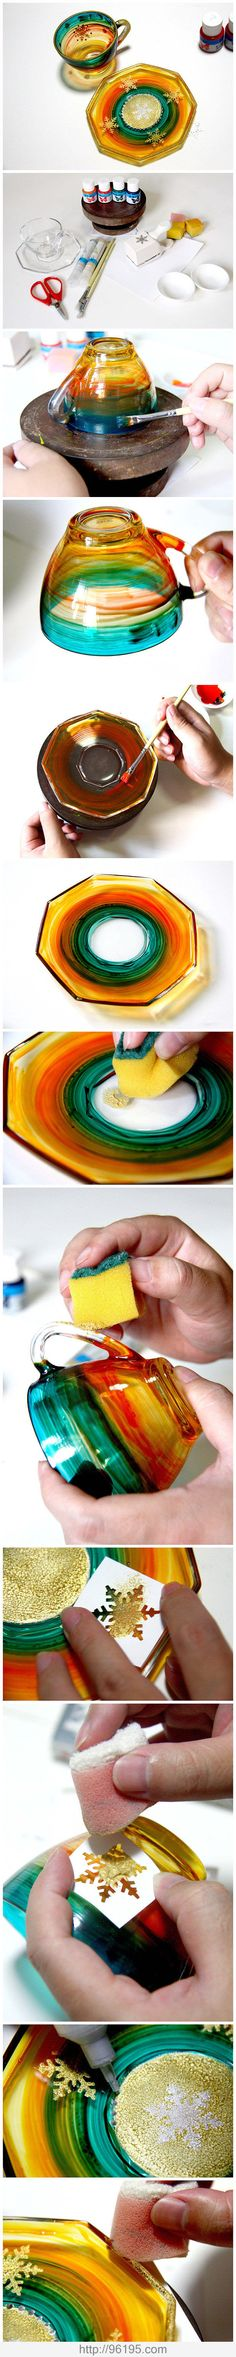 I have done reverse painting onto clear dishes. This looks sooo much easier! Very nice!